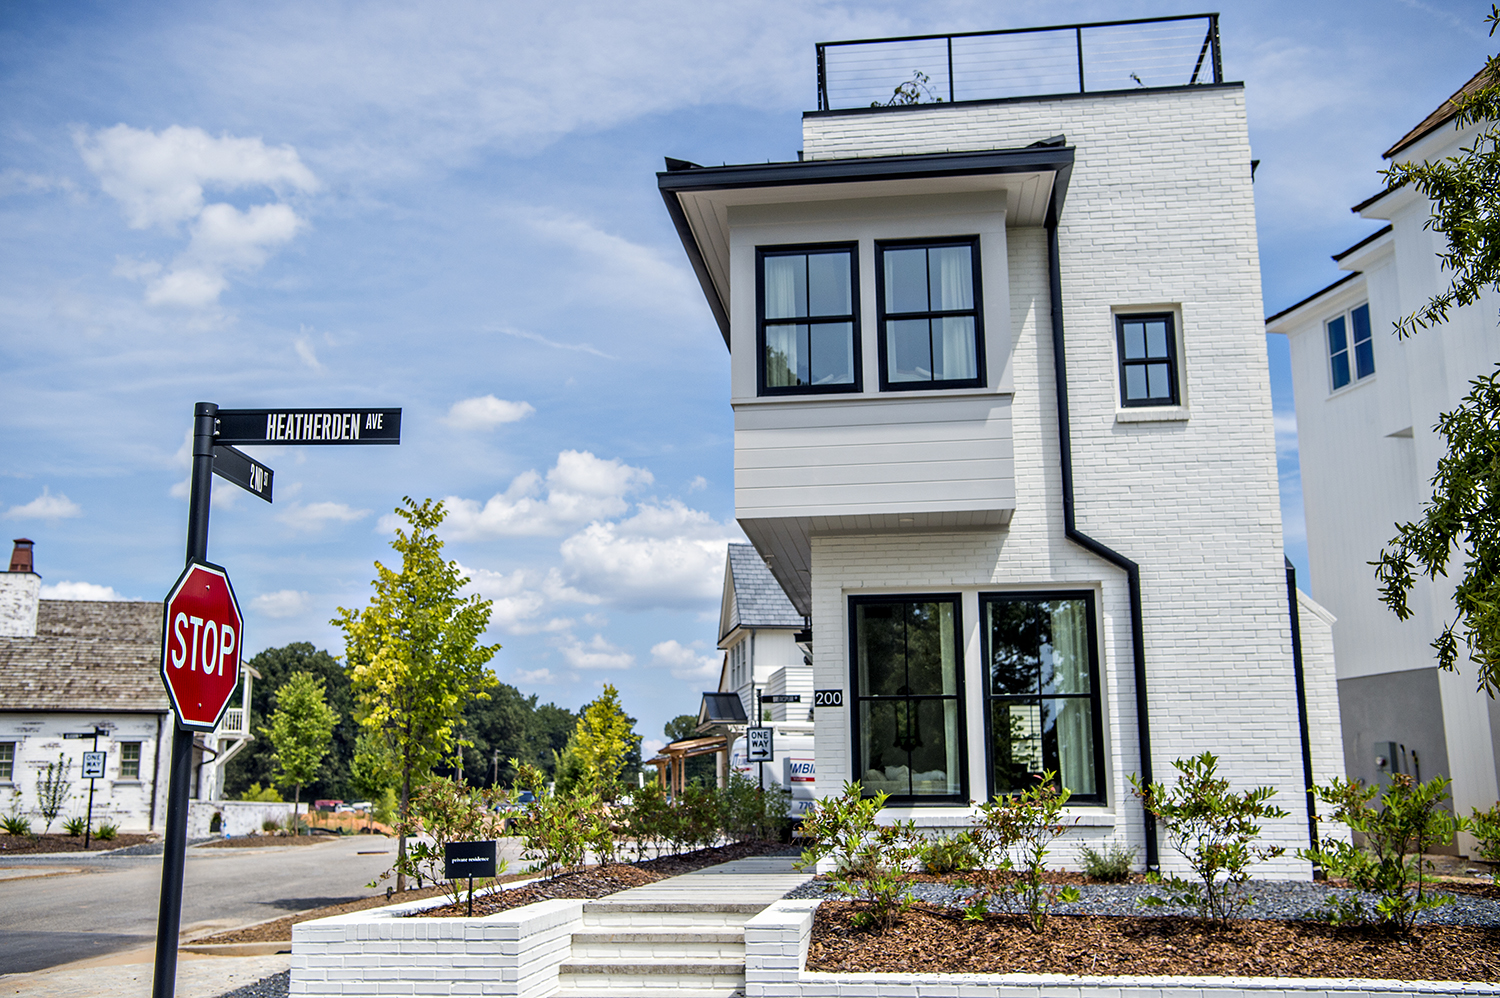 Photos: How a new town tied to Georgia's TV and film industry is rising south of Atlanta